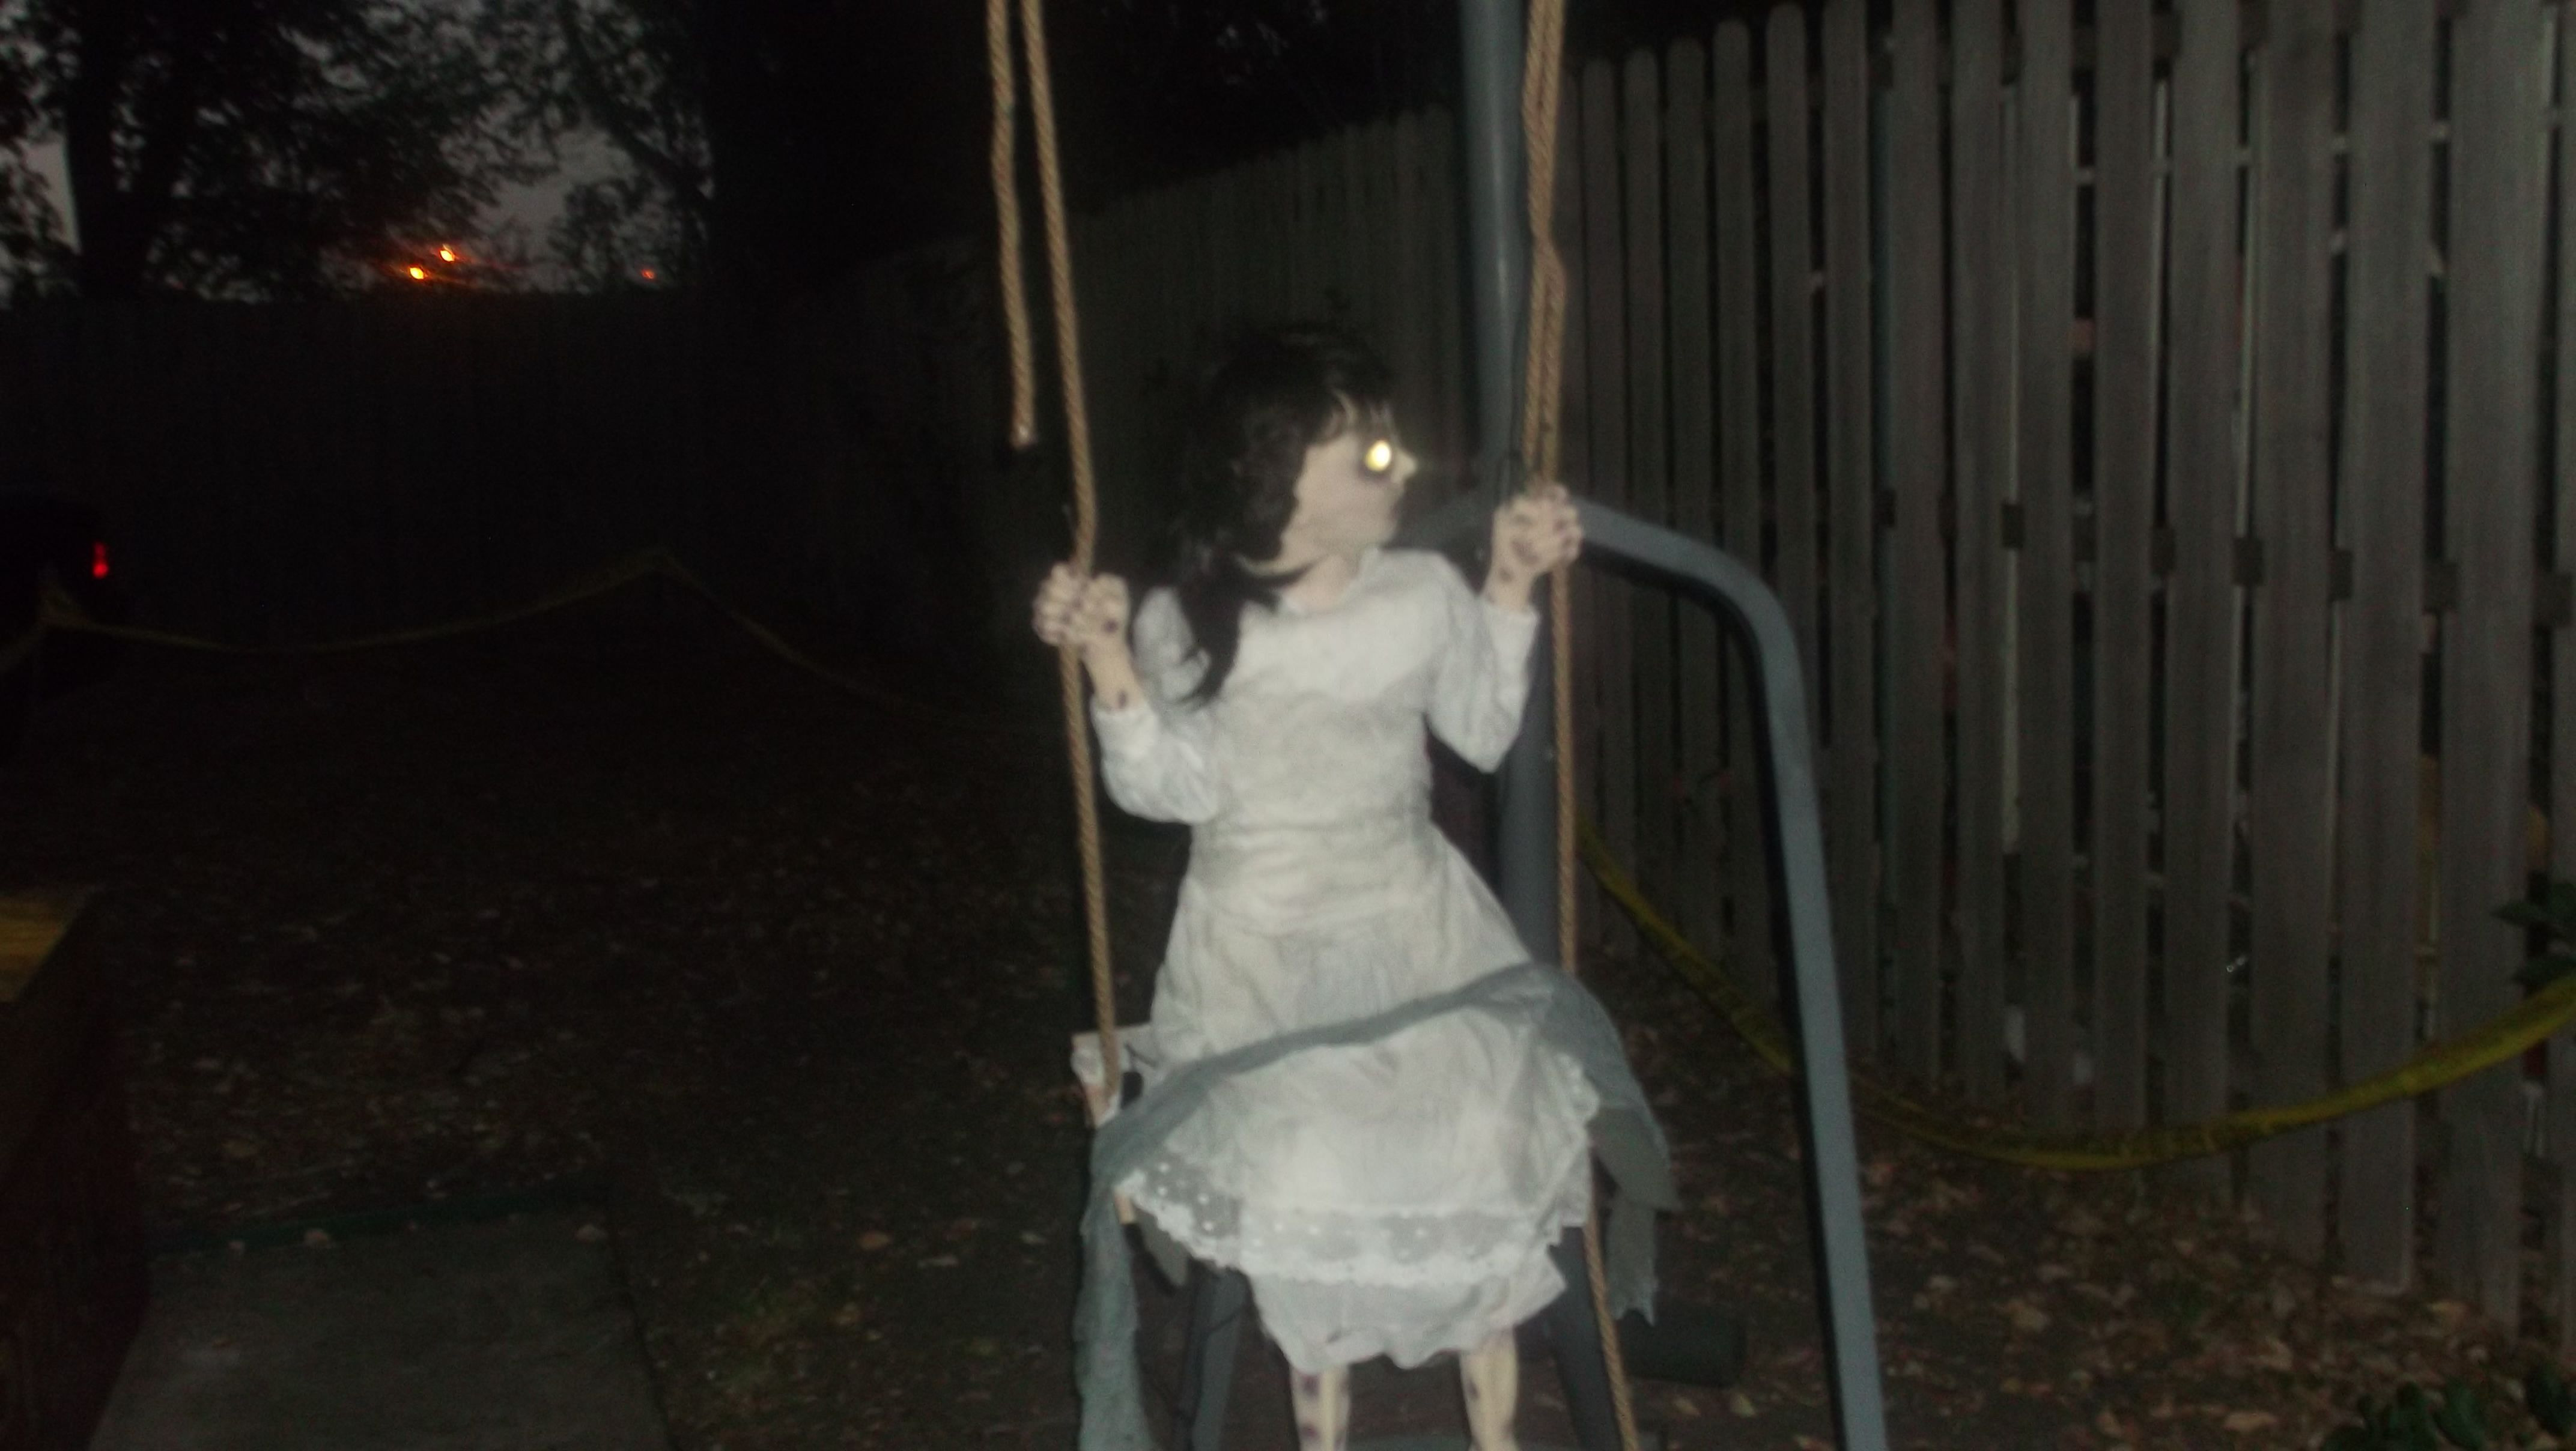 Zombie Swing girl was one of Spirit Halloween's most